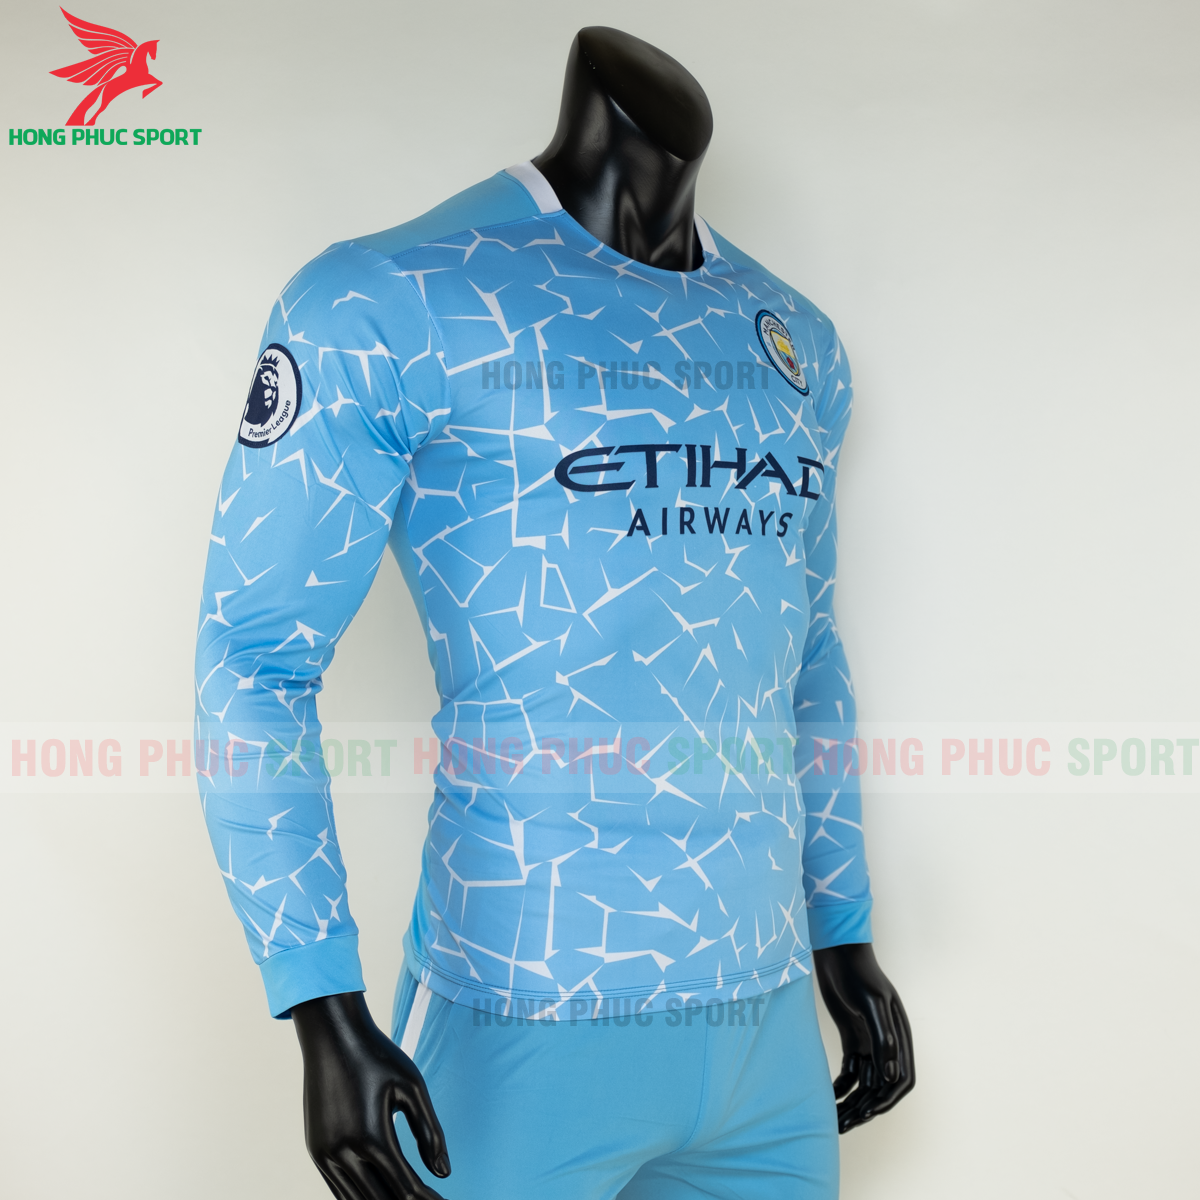 https://cdn.hongphucsport.com/unsafe/s4.shopbay.vn/files/285/ao-dai-tay-manchester-city-2020-san-nha-3-5f8fdbe173c6c.png